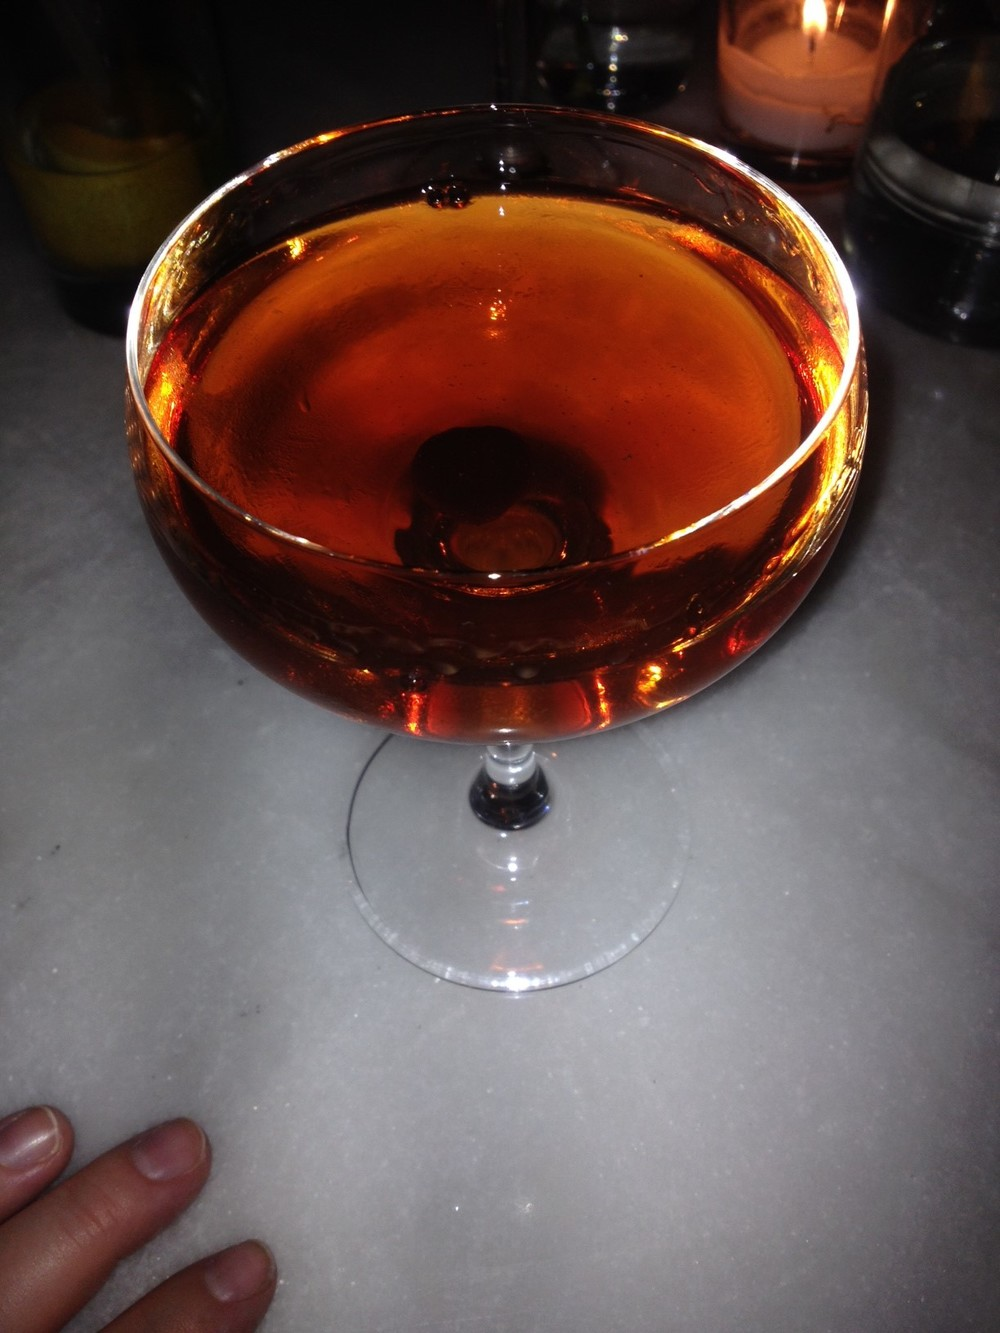 Bulleit Manhattan - don't you just love the brandied cherry? Swank city!